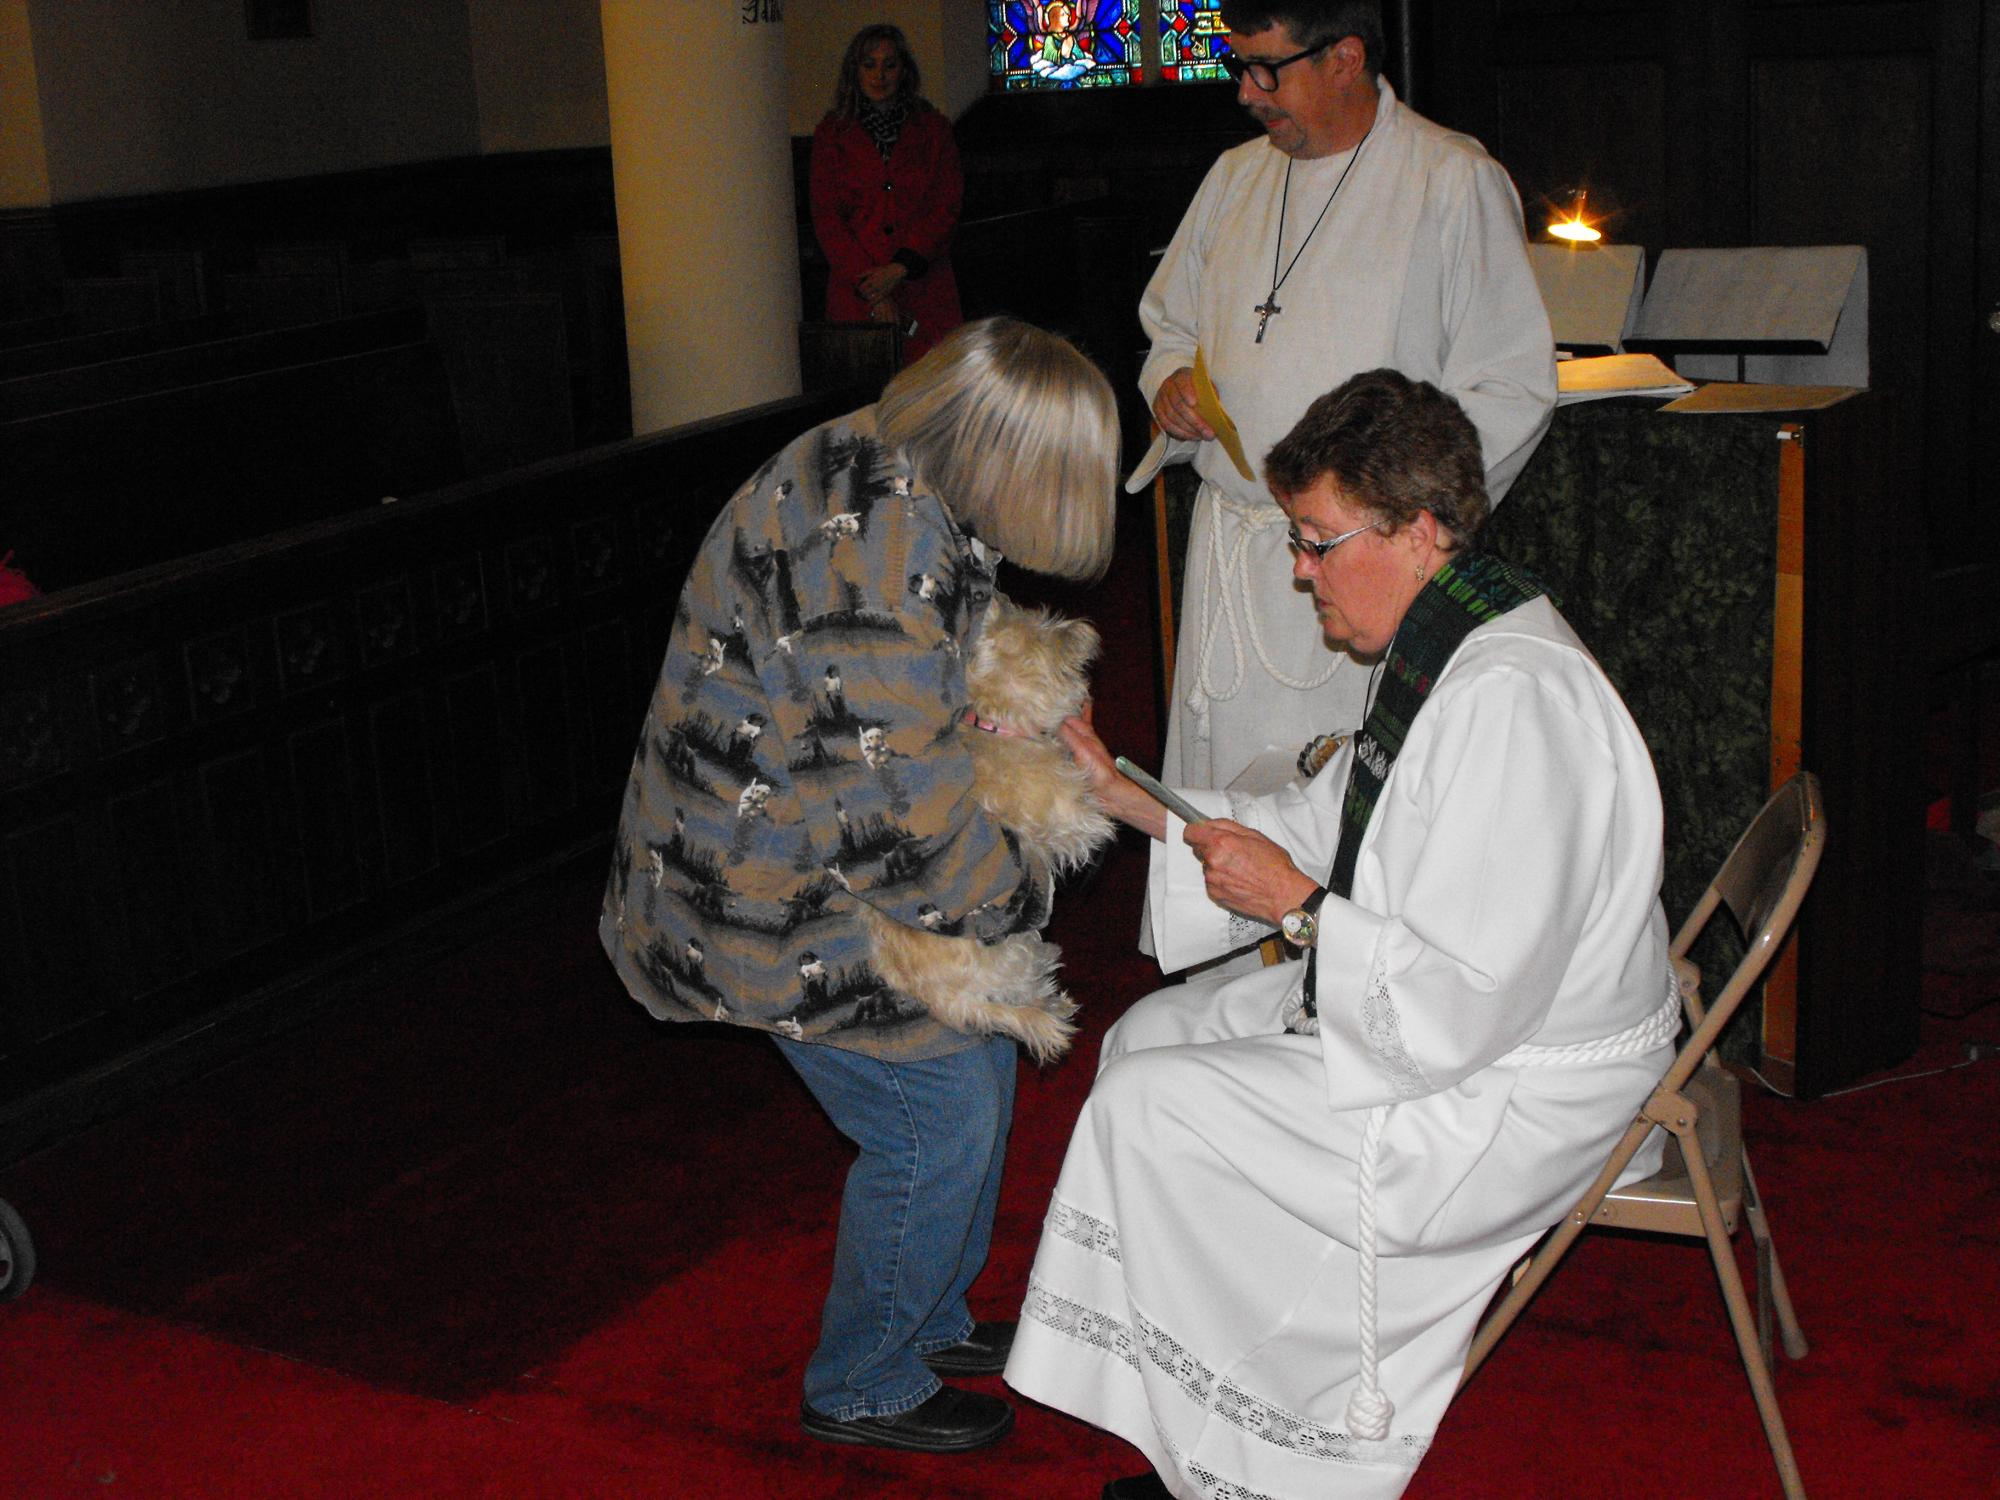 Blessing_of_the_Animals_10-4-15_070.JPG